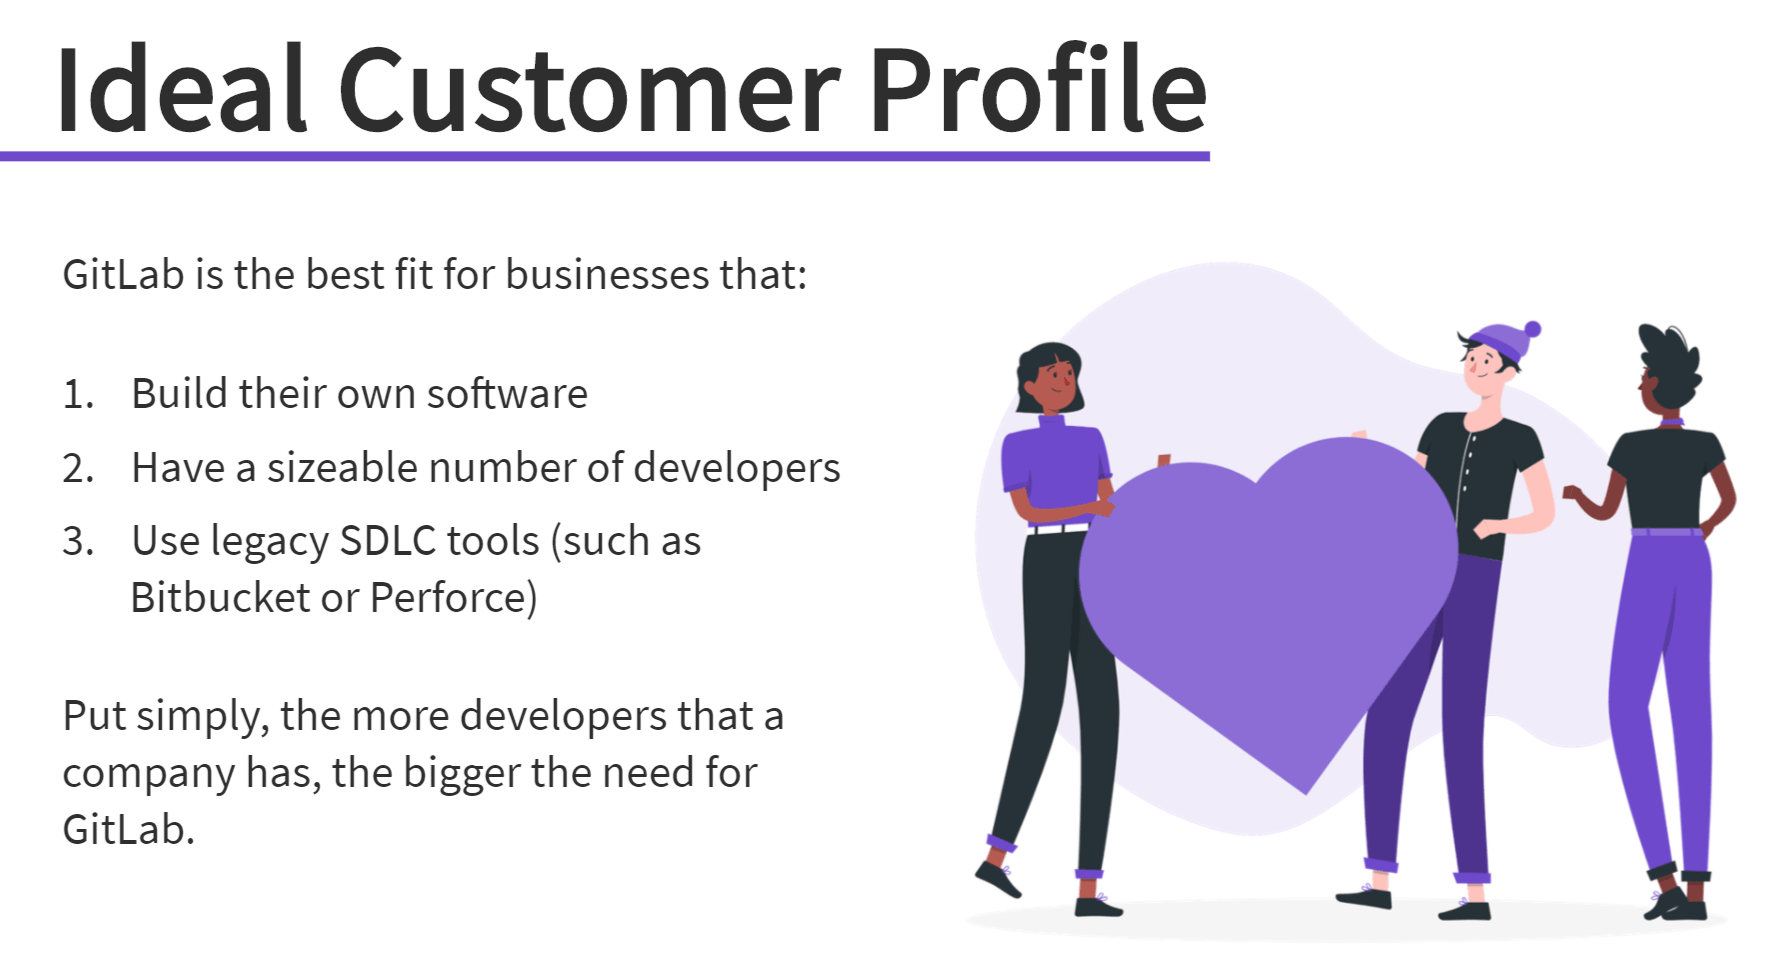 GitLab eLearning example with illustration from freepik stories